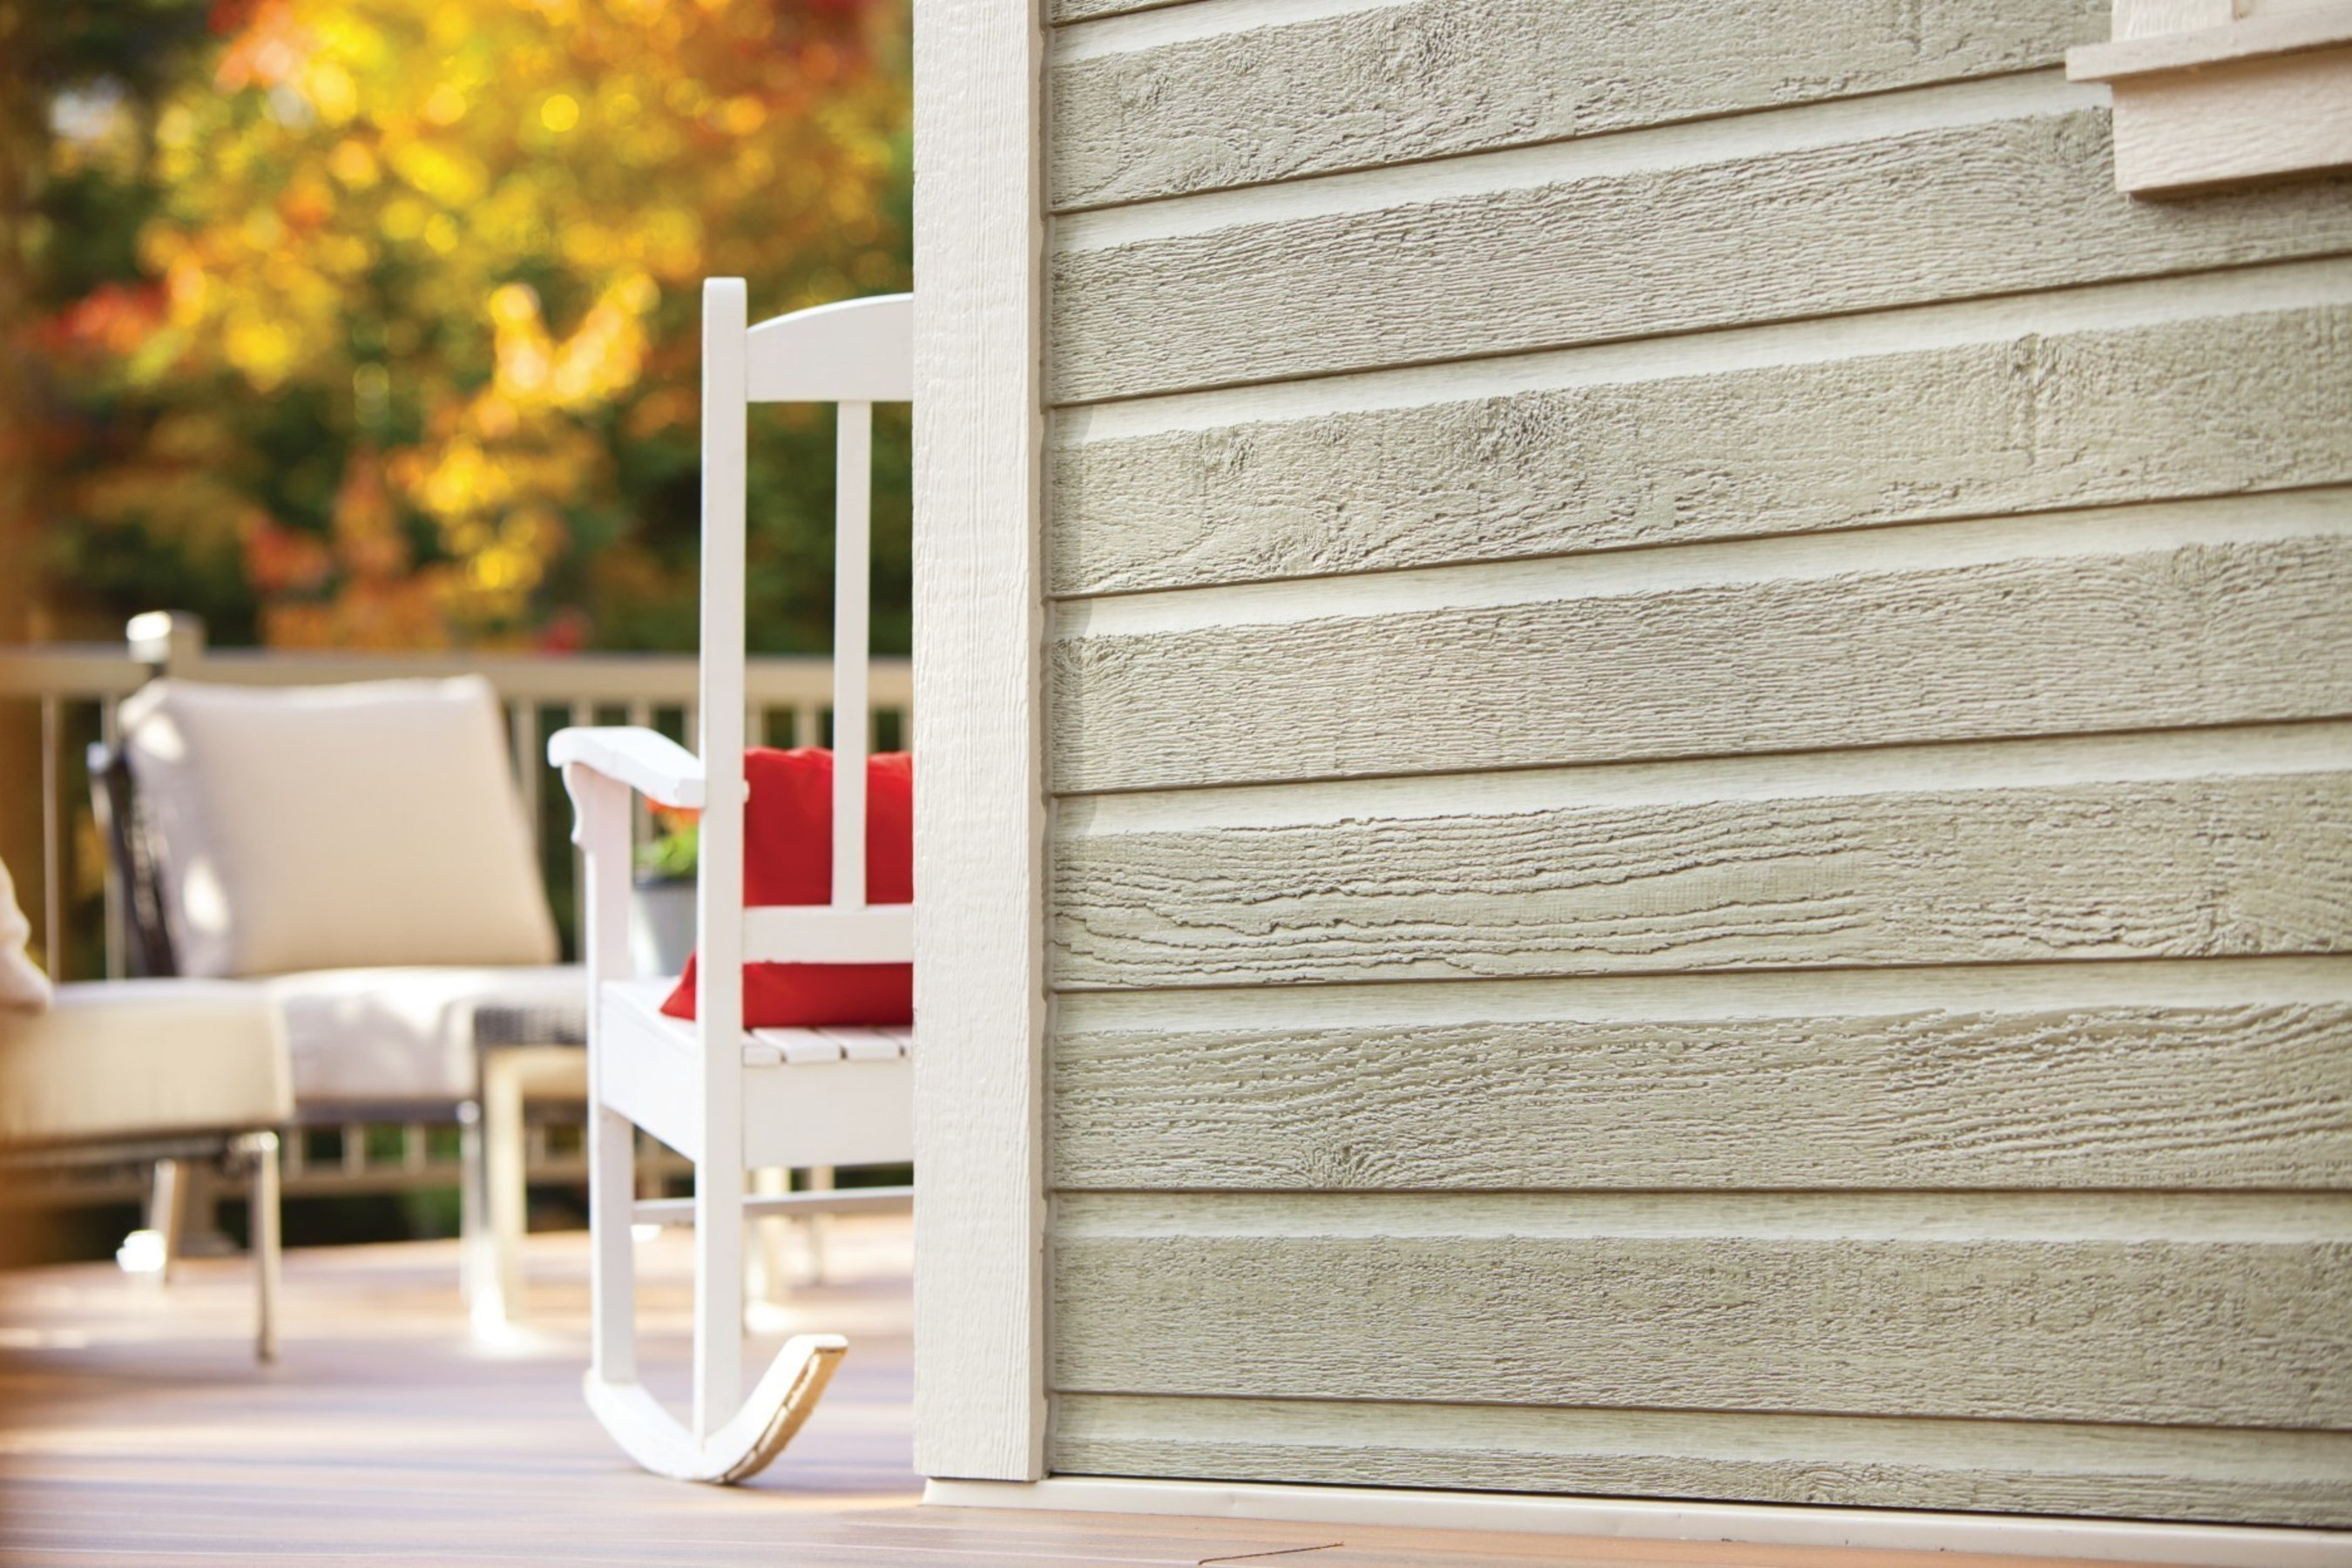 Freeze-Thaw Cycles May Damage a Home's Siding